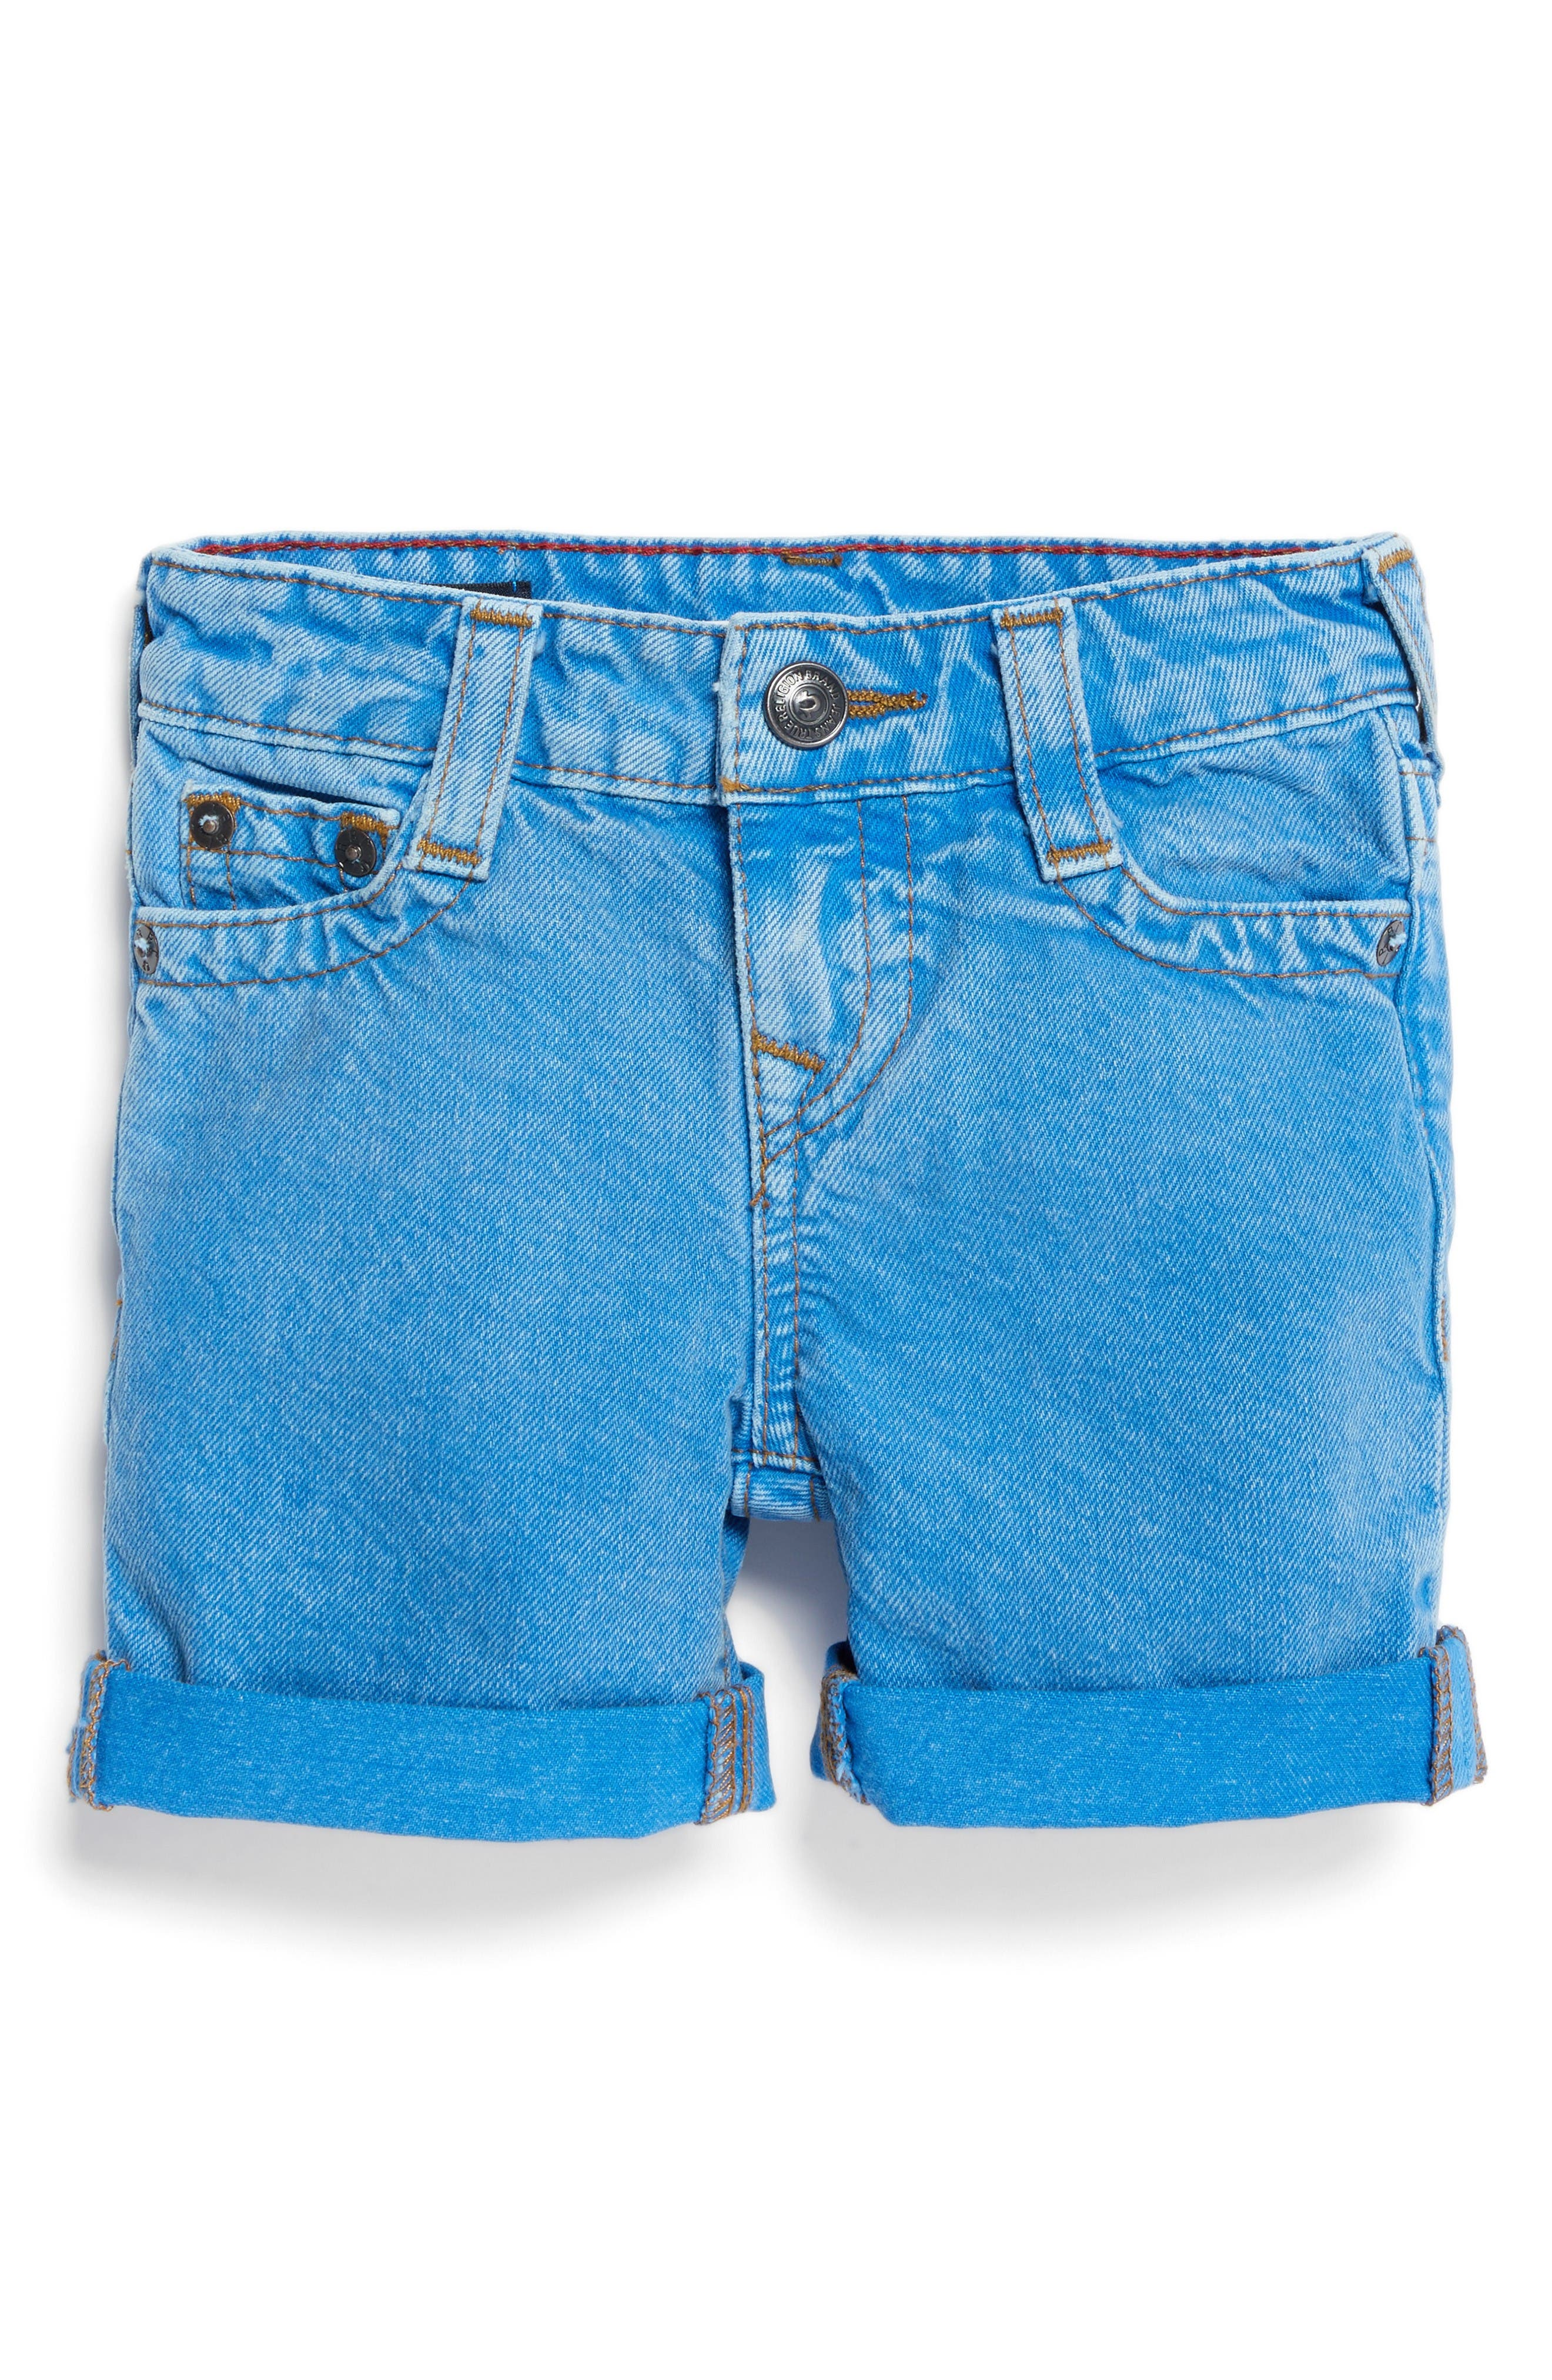 True Religion Geno Denim Shorts,                             Main thumbnail 1, color,                             Bright Blue